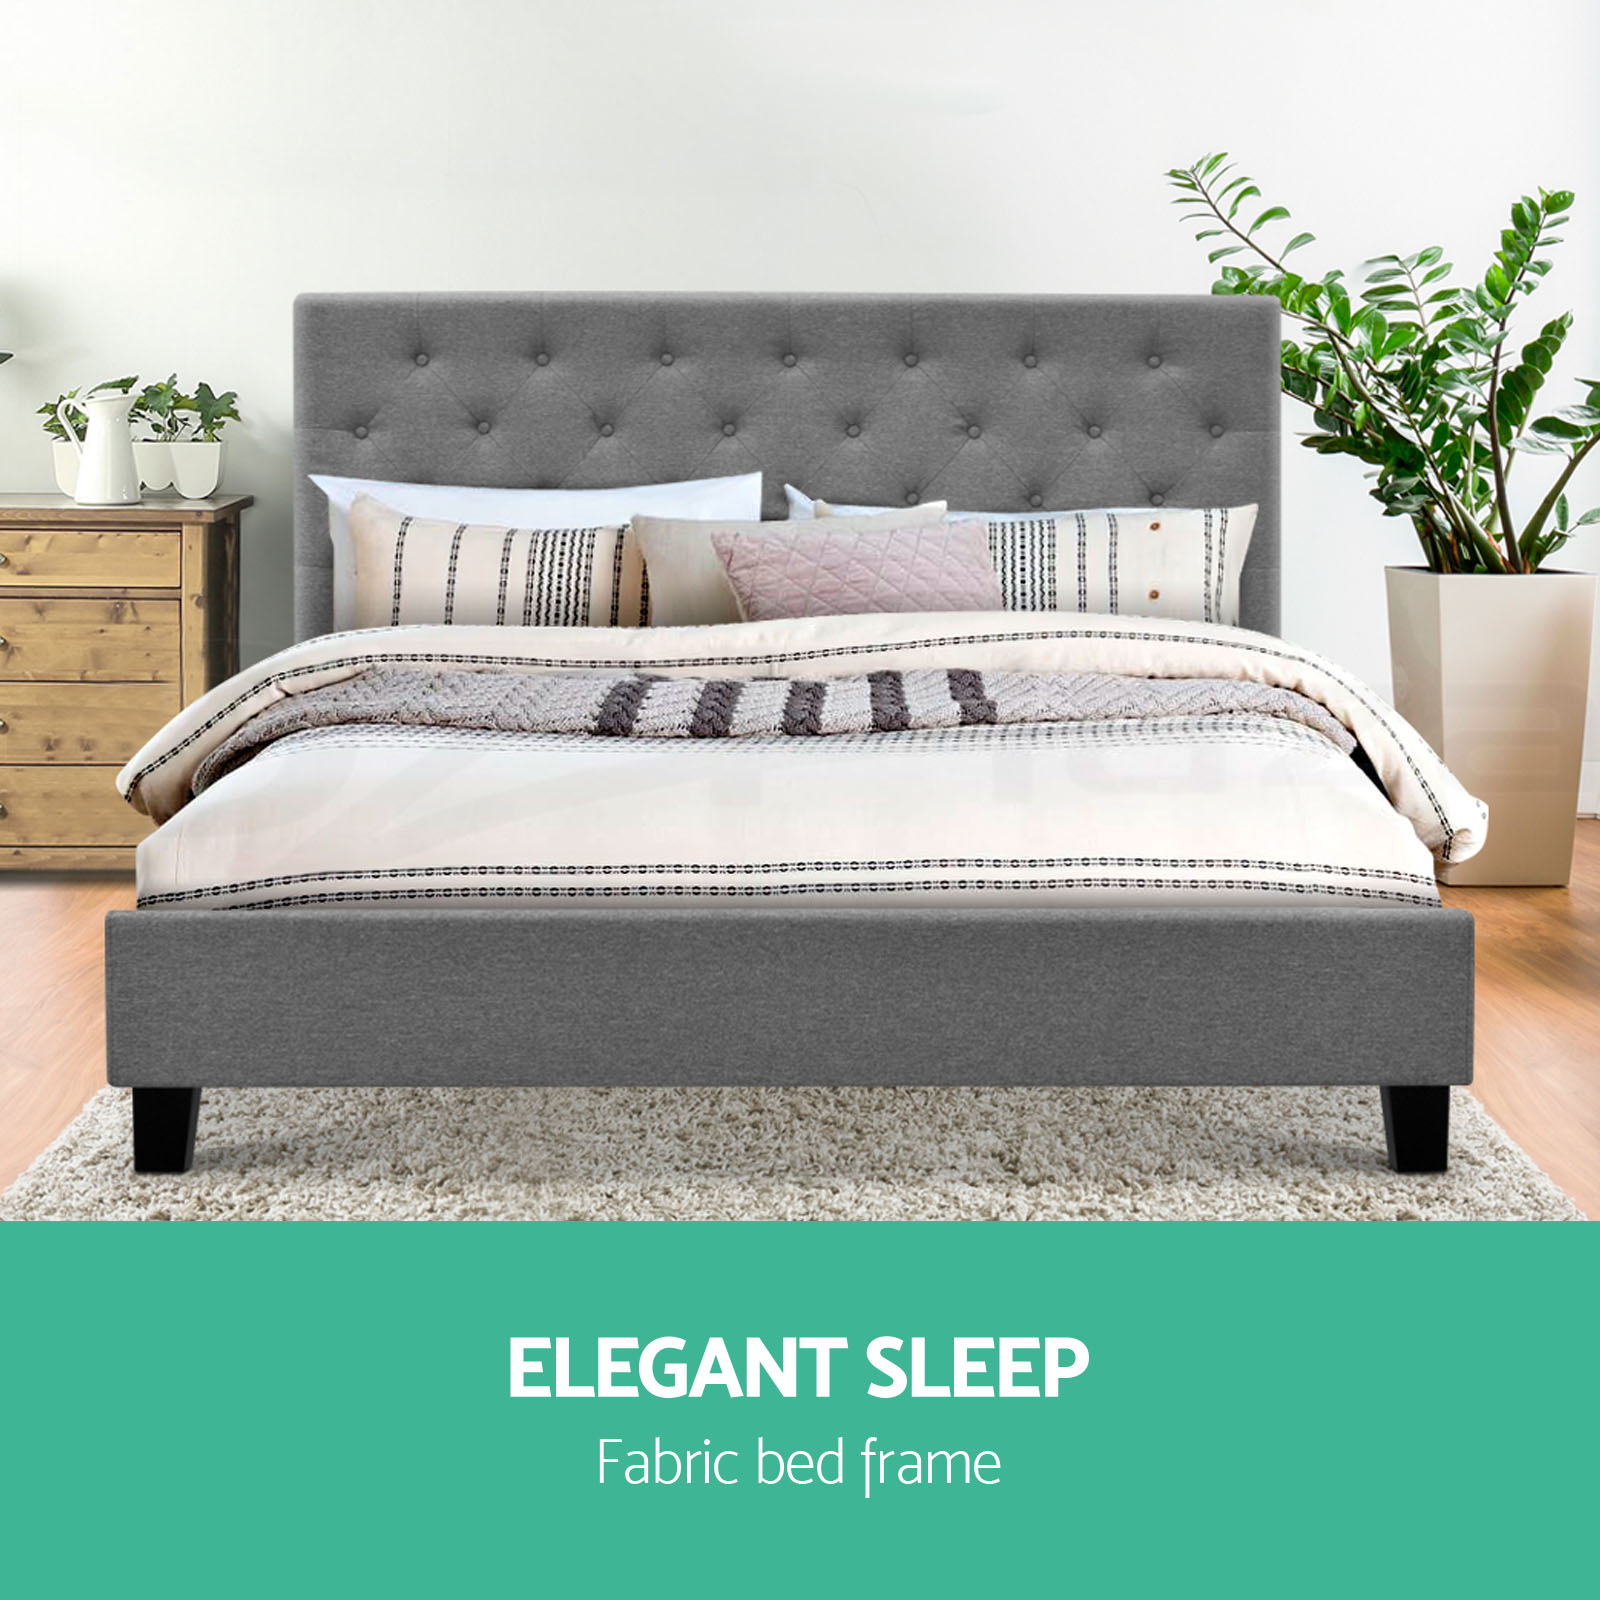 Queen King Double Size Bed Frame Headboard Wooden Gas Lift